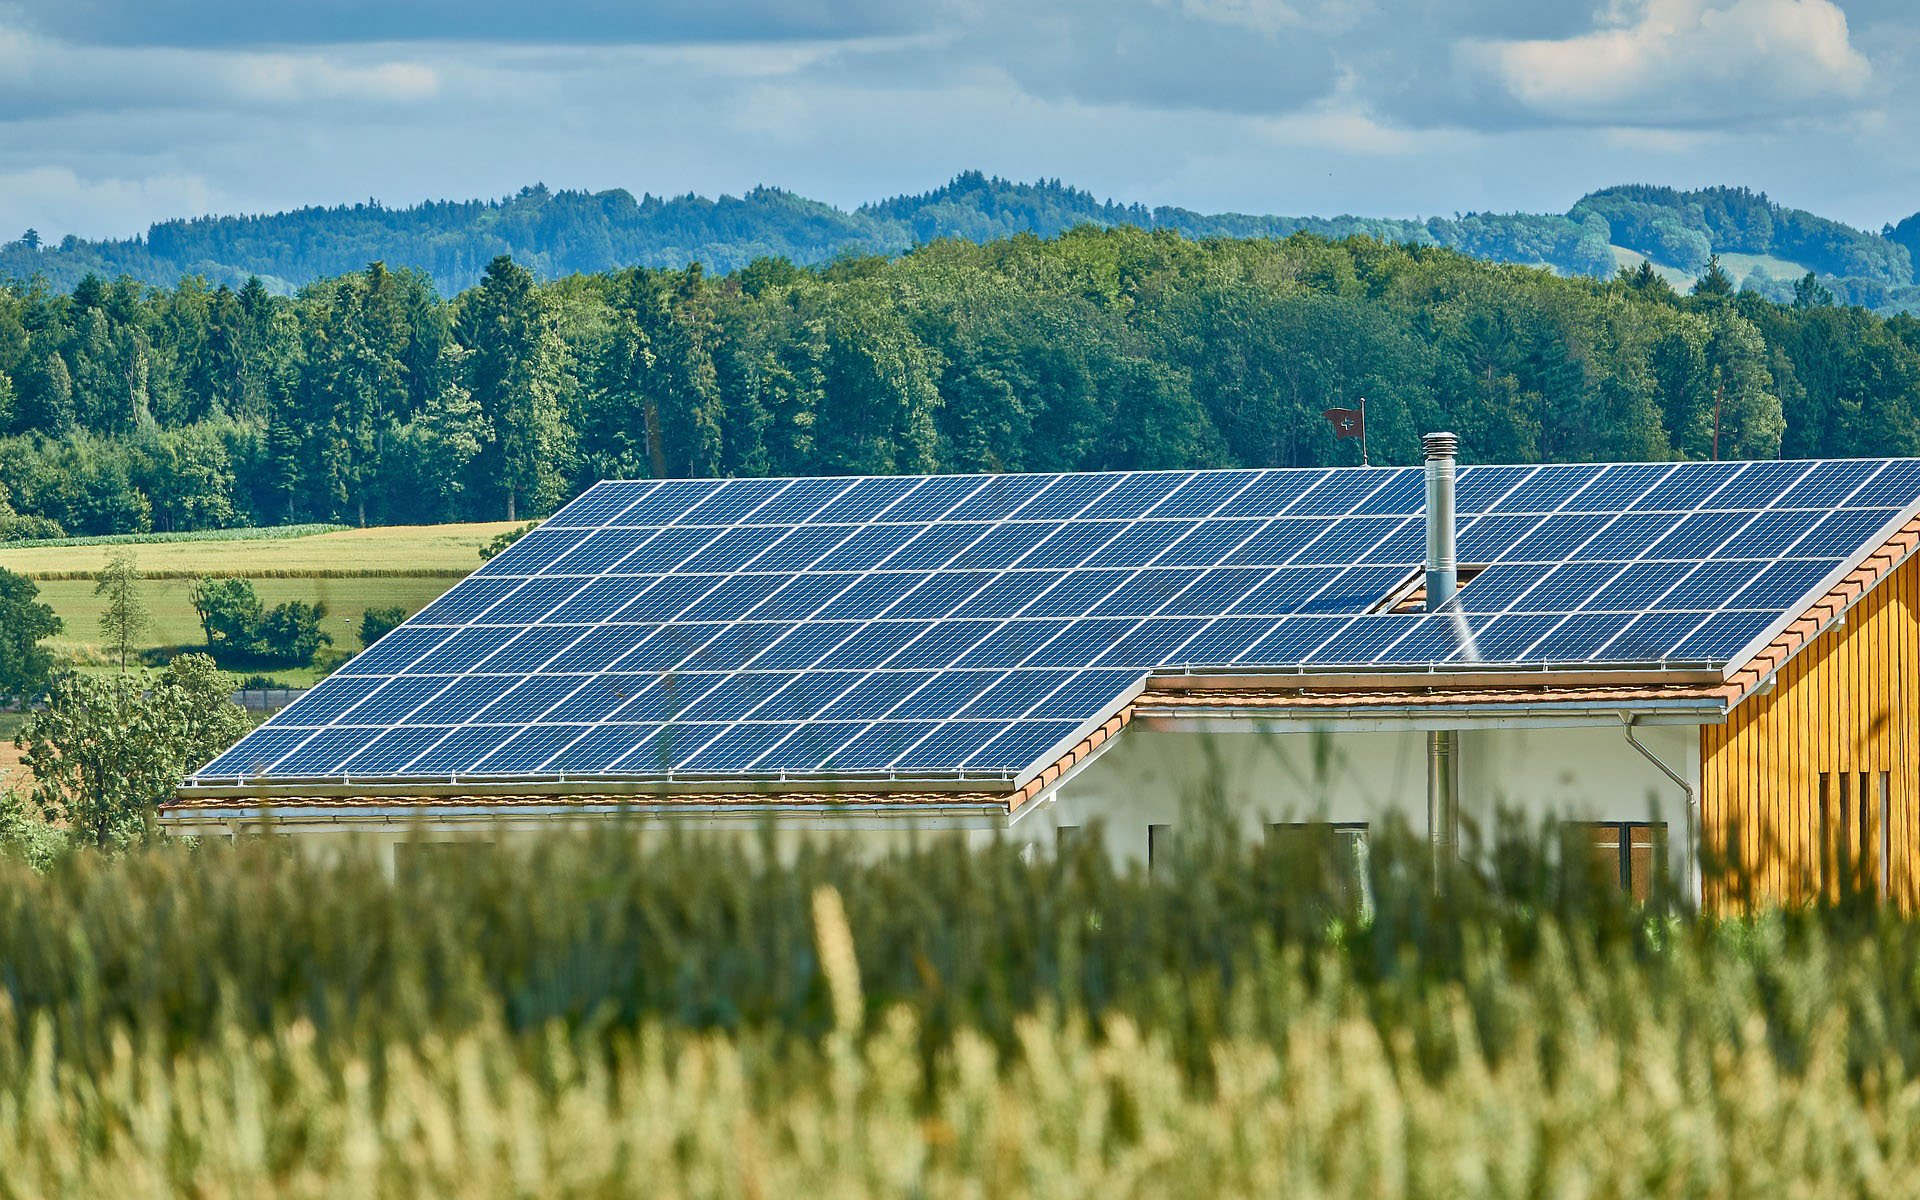 should i mine cryptocurrency if i have solar panels